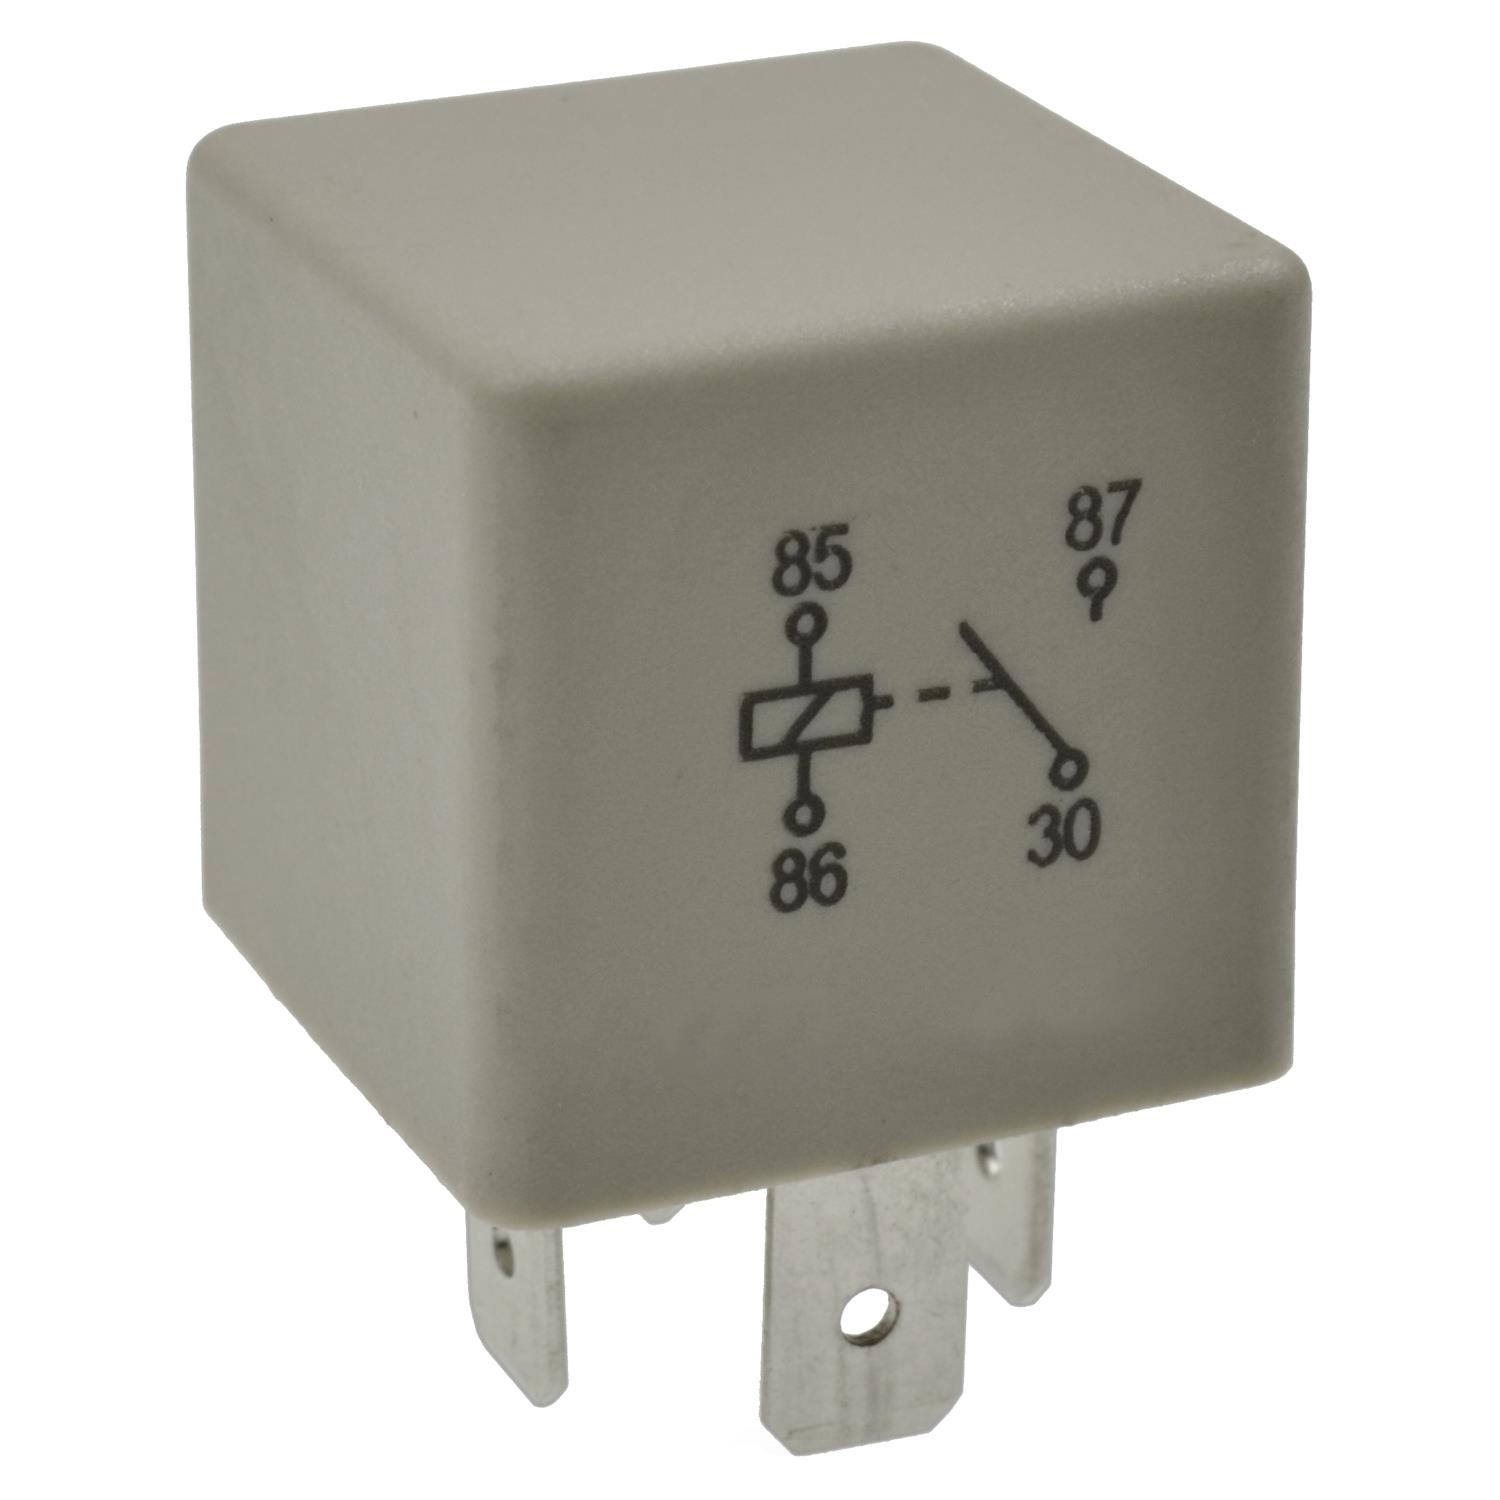 STANDARD T-SERIES - Power Window Relay - STT RY265T